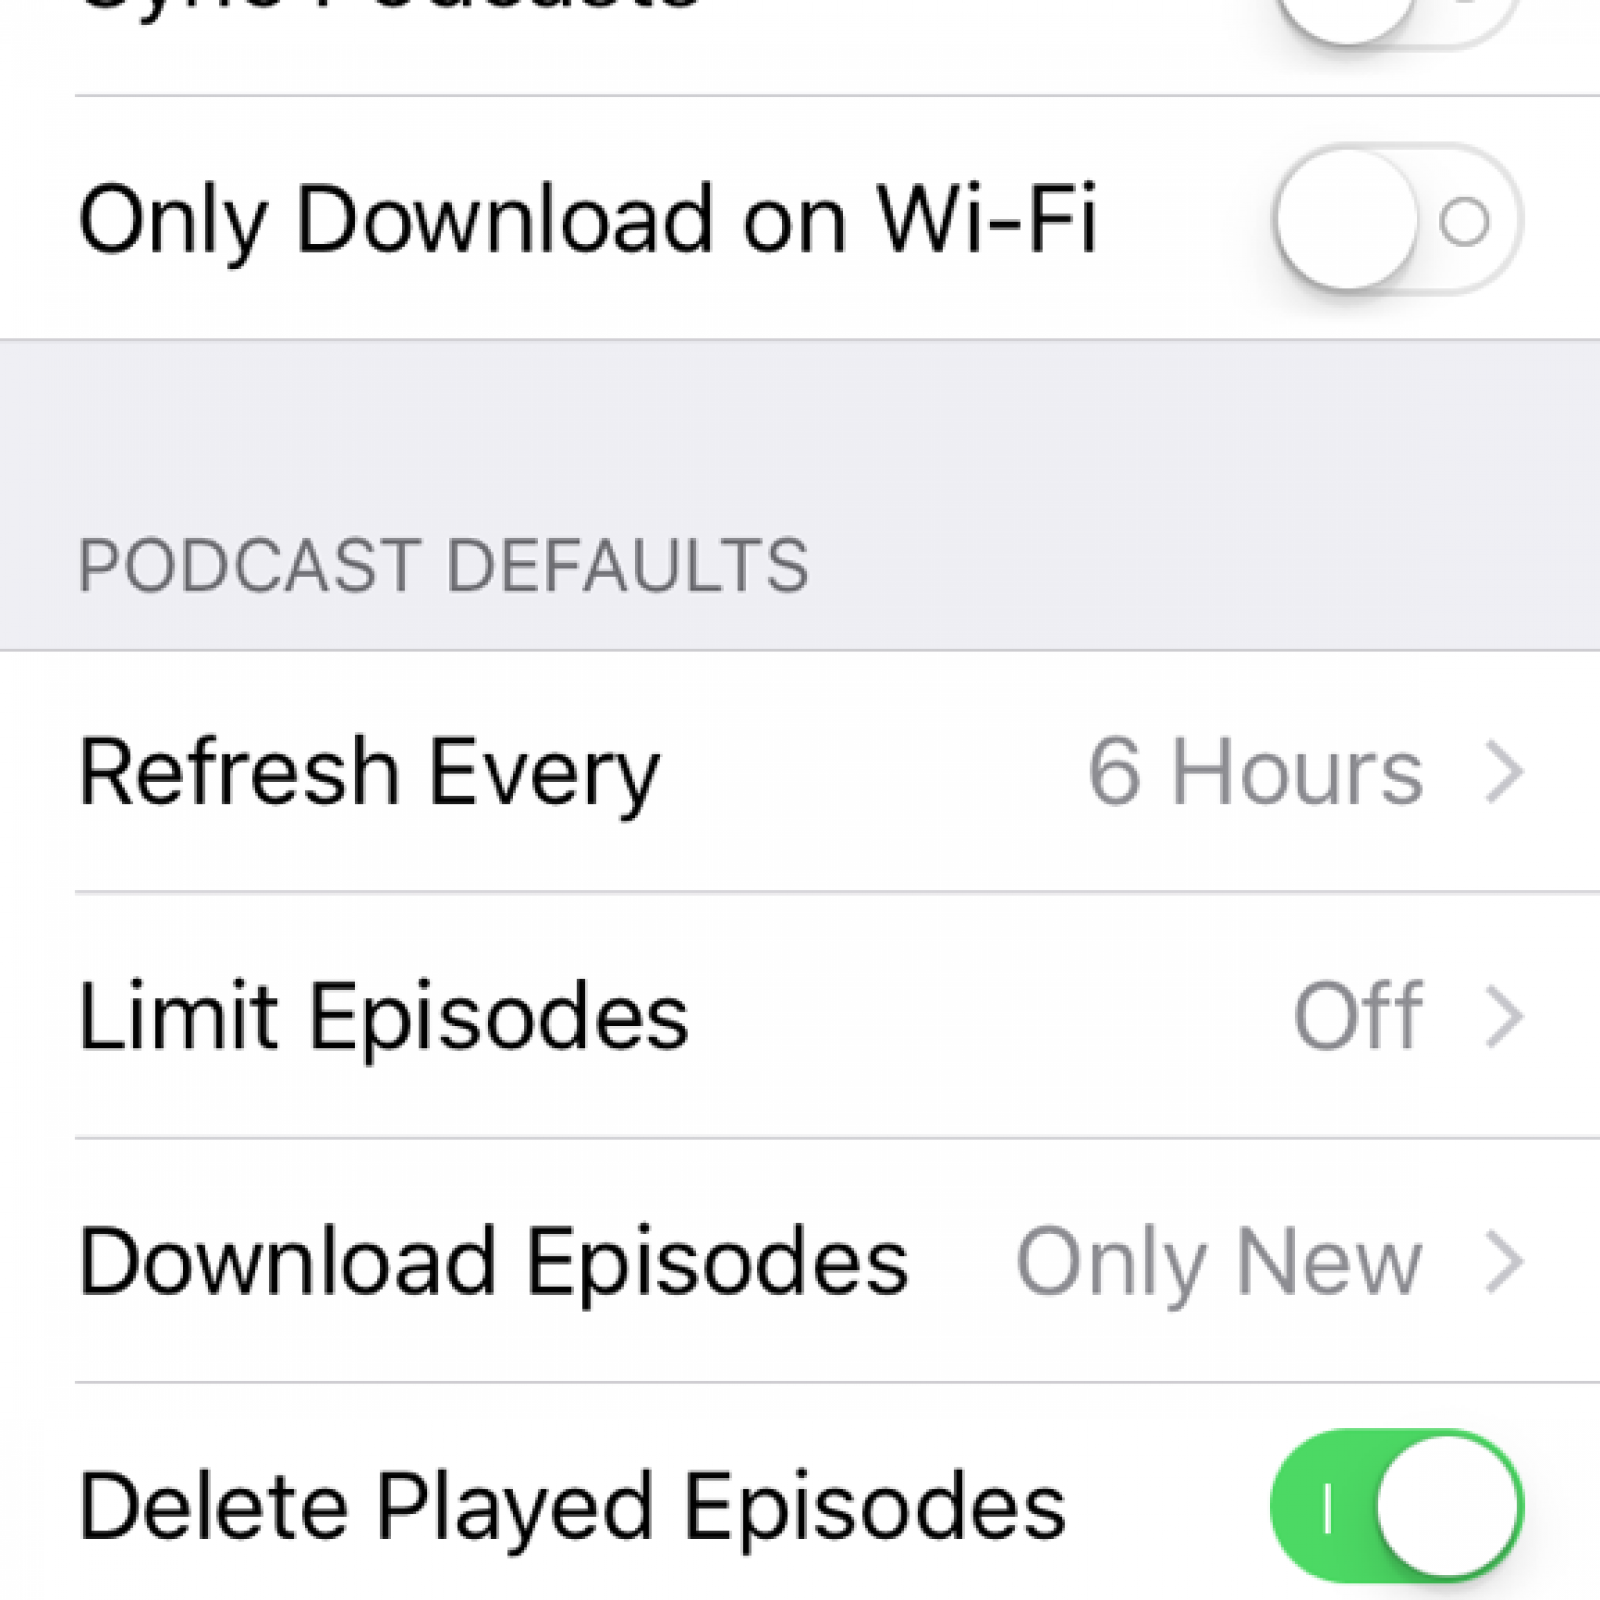 Podcast Limit Episodes